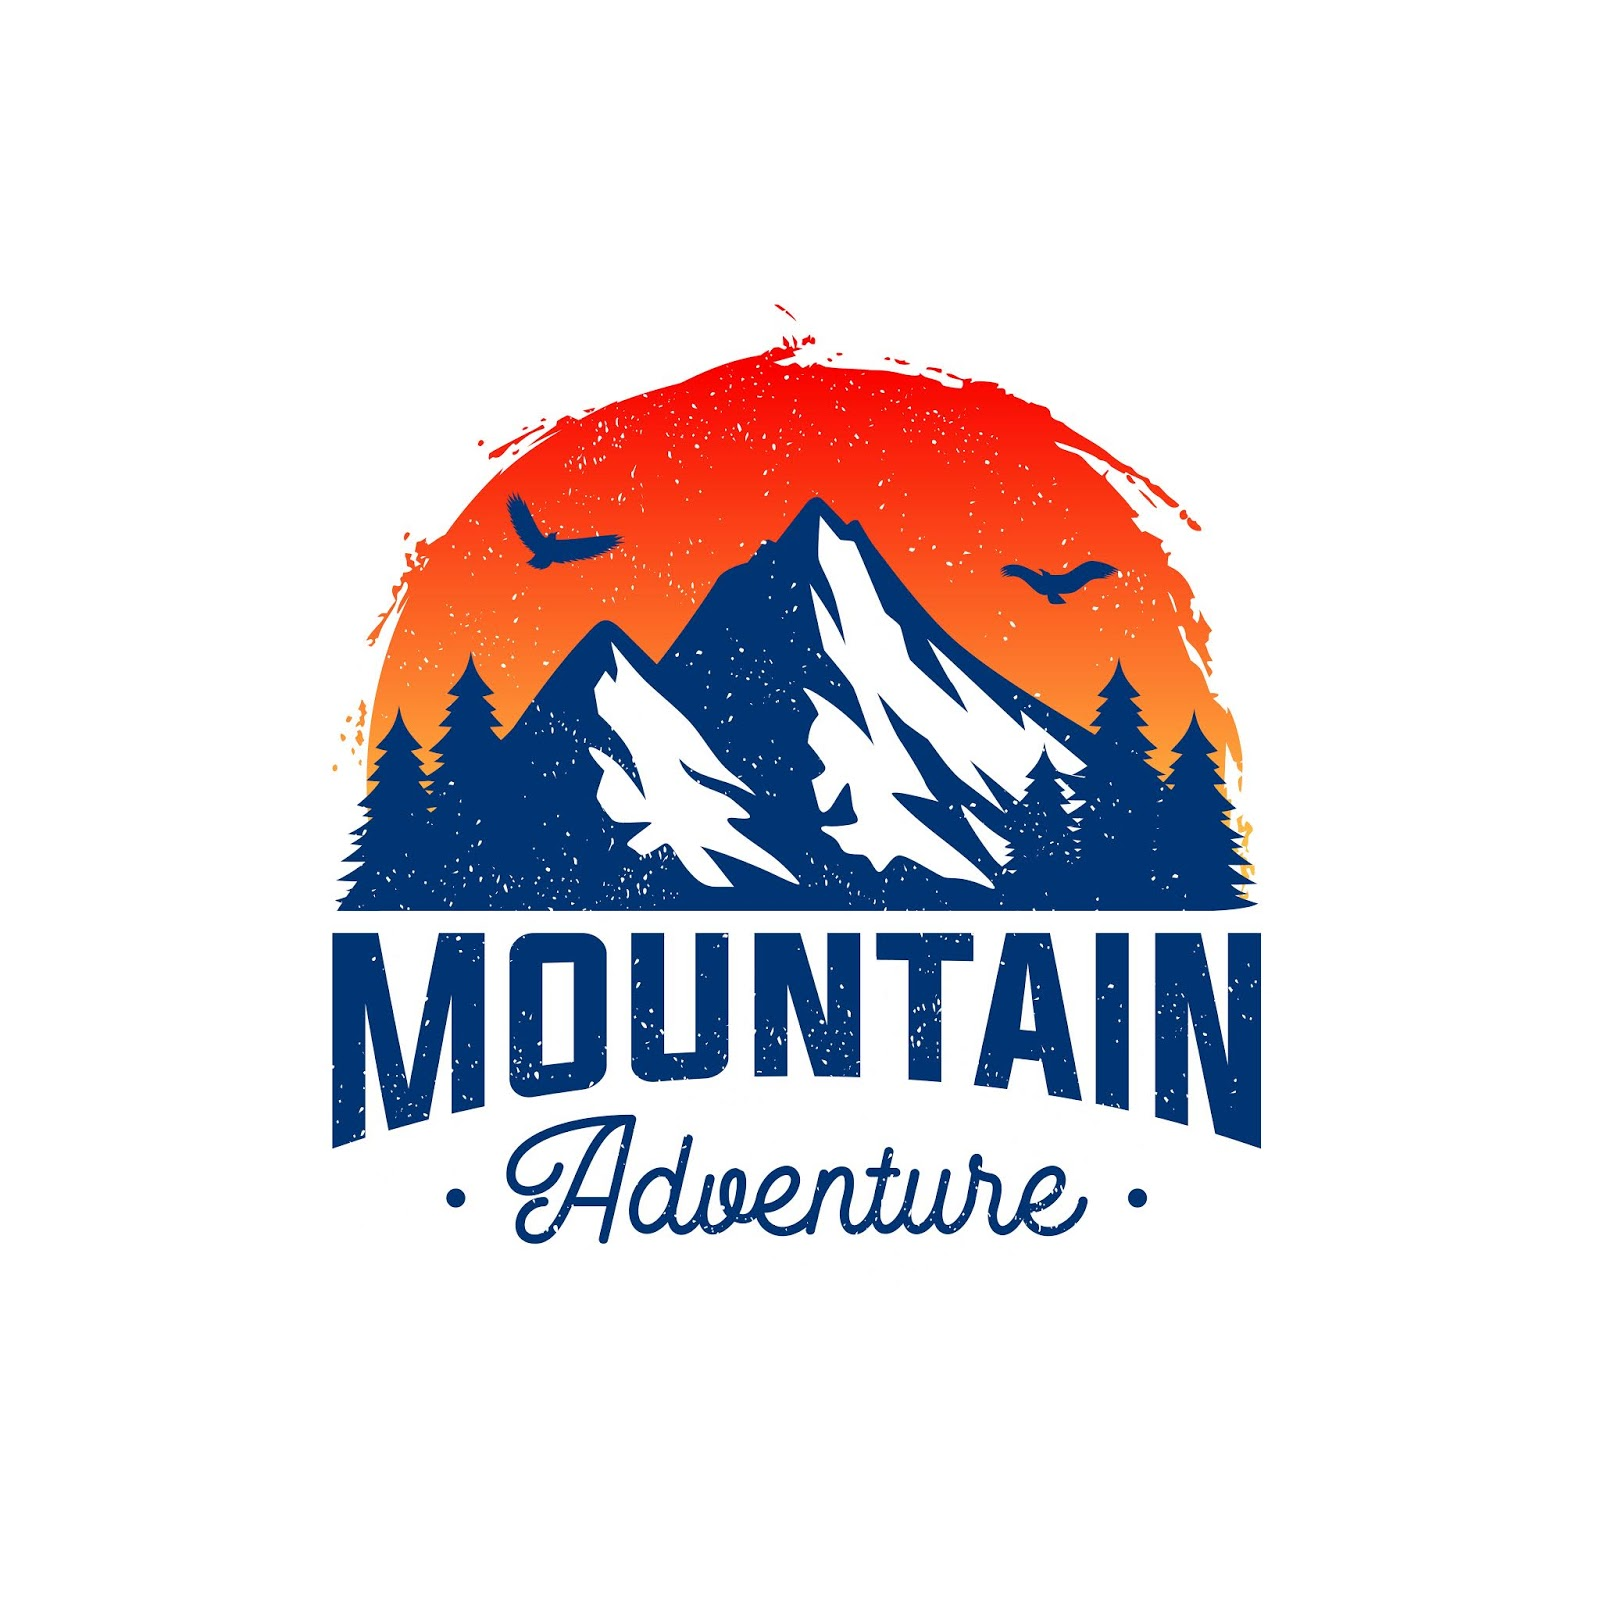 Mountain Logo Adventure Outdoor Logo Free Download Vector CDR, AI, EPS and PNG Formats